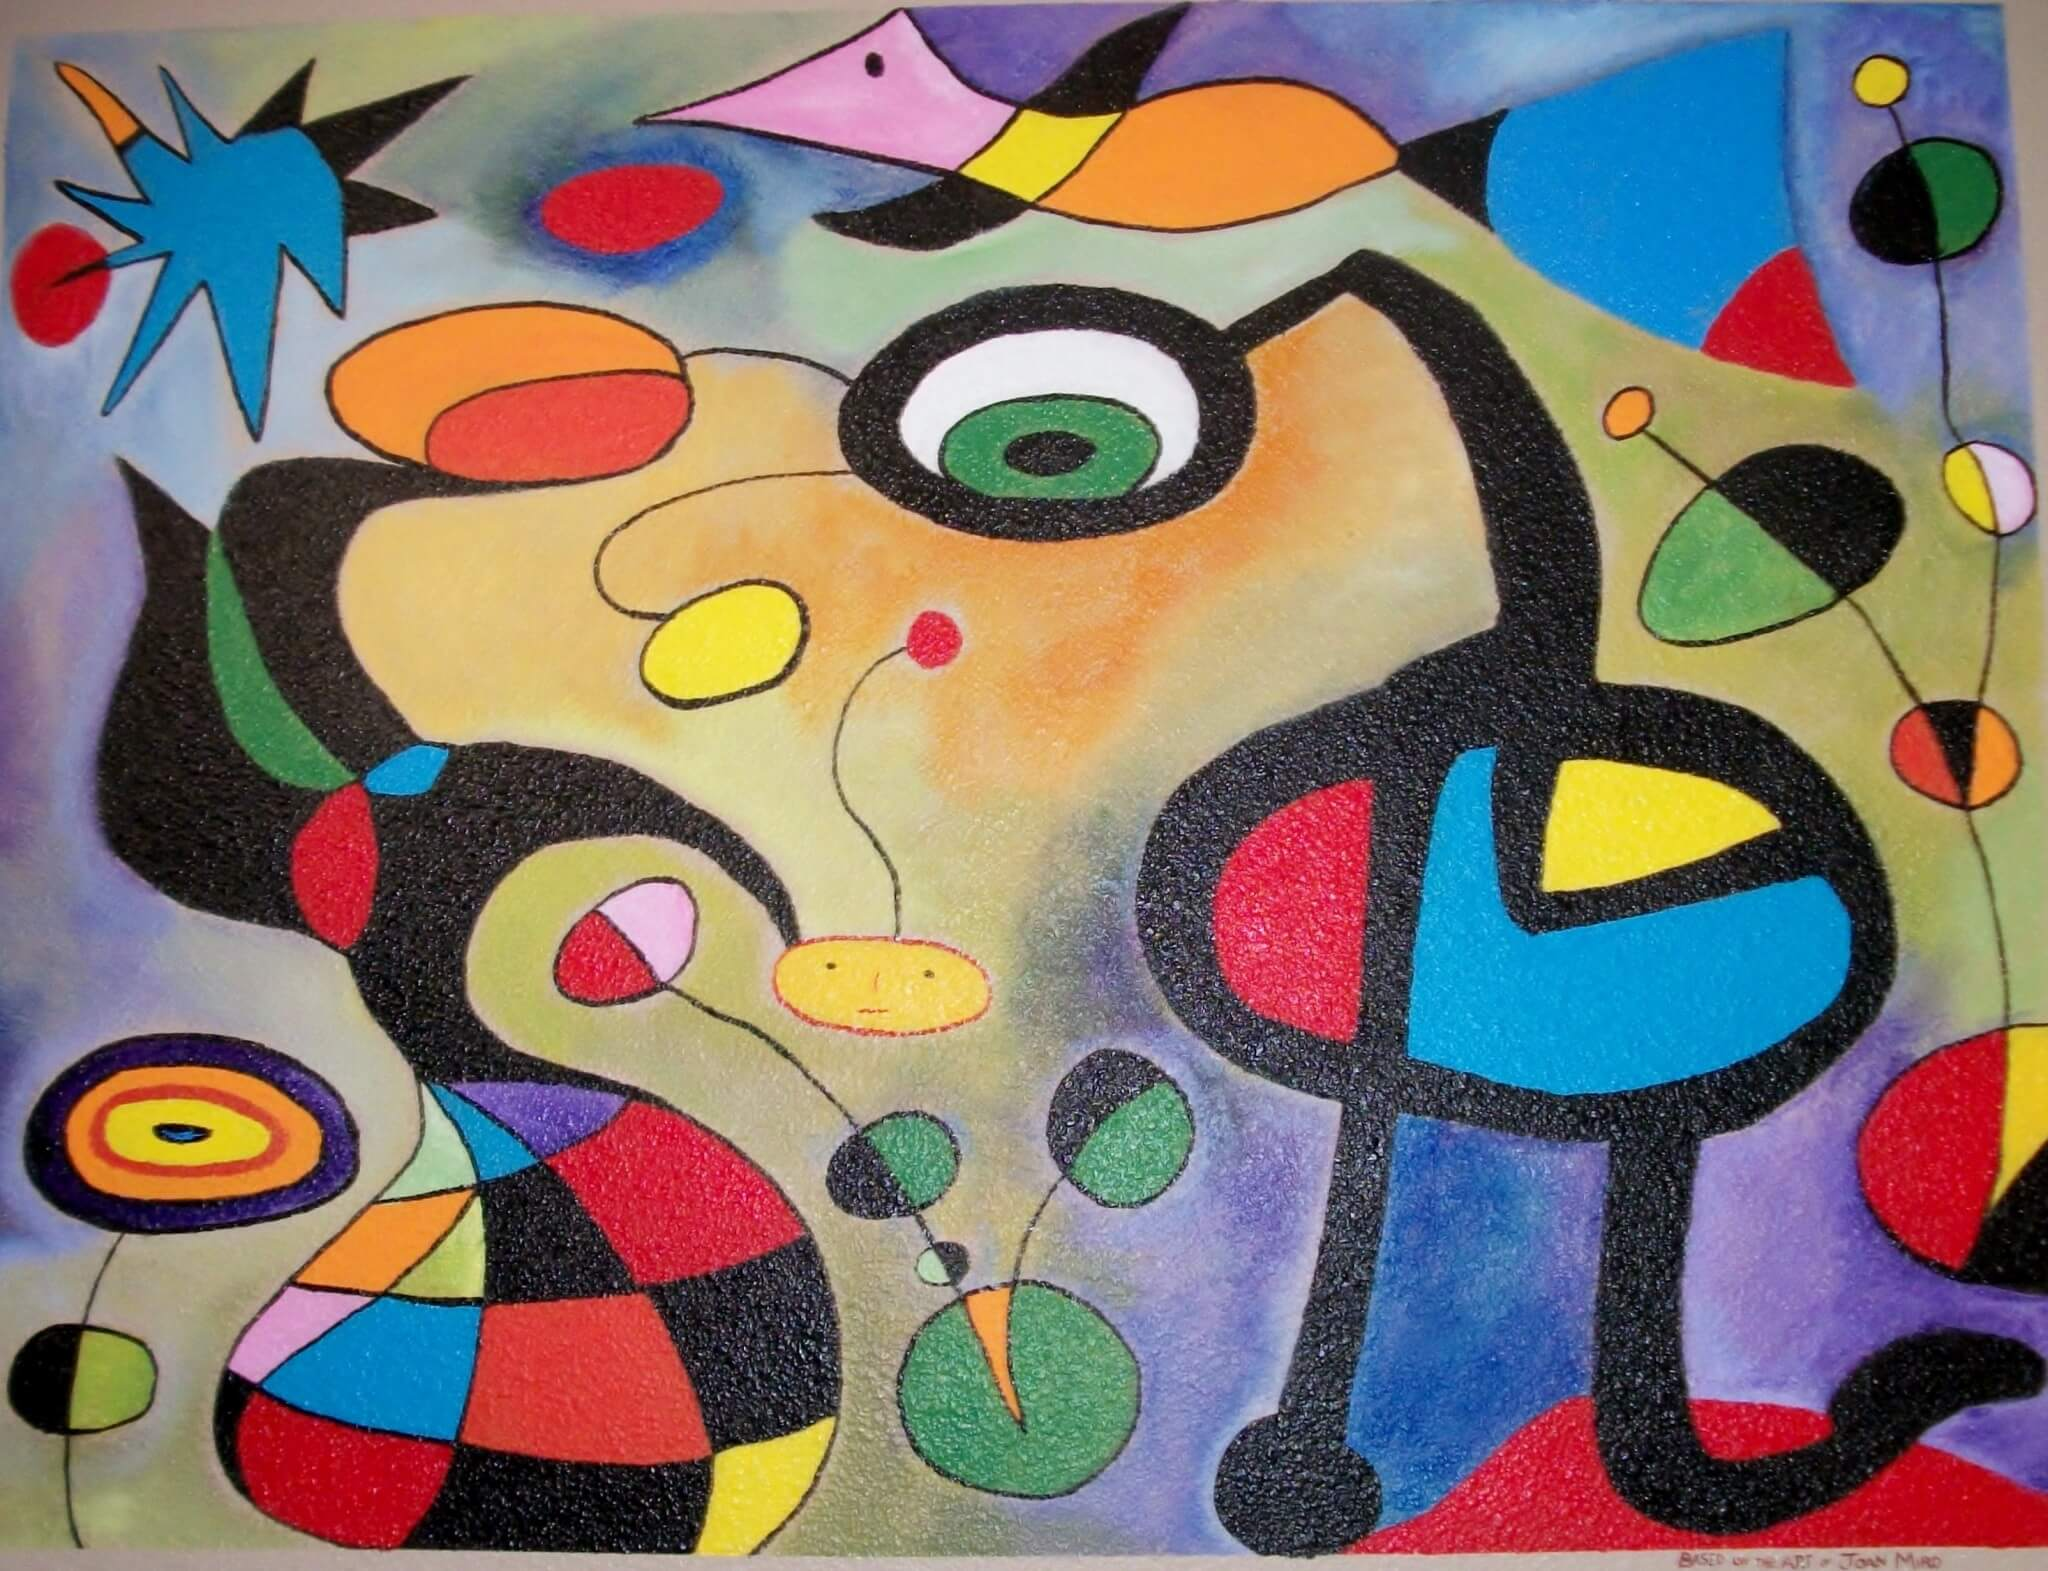 Meaning in Miró: Using Art to Engage in Juvenile Facilities | The Imprint